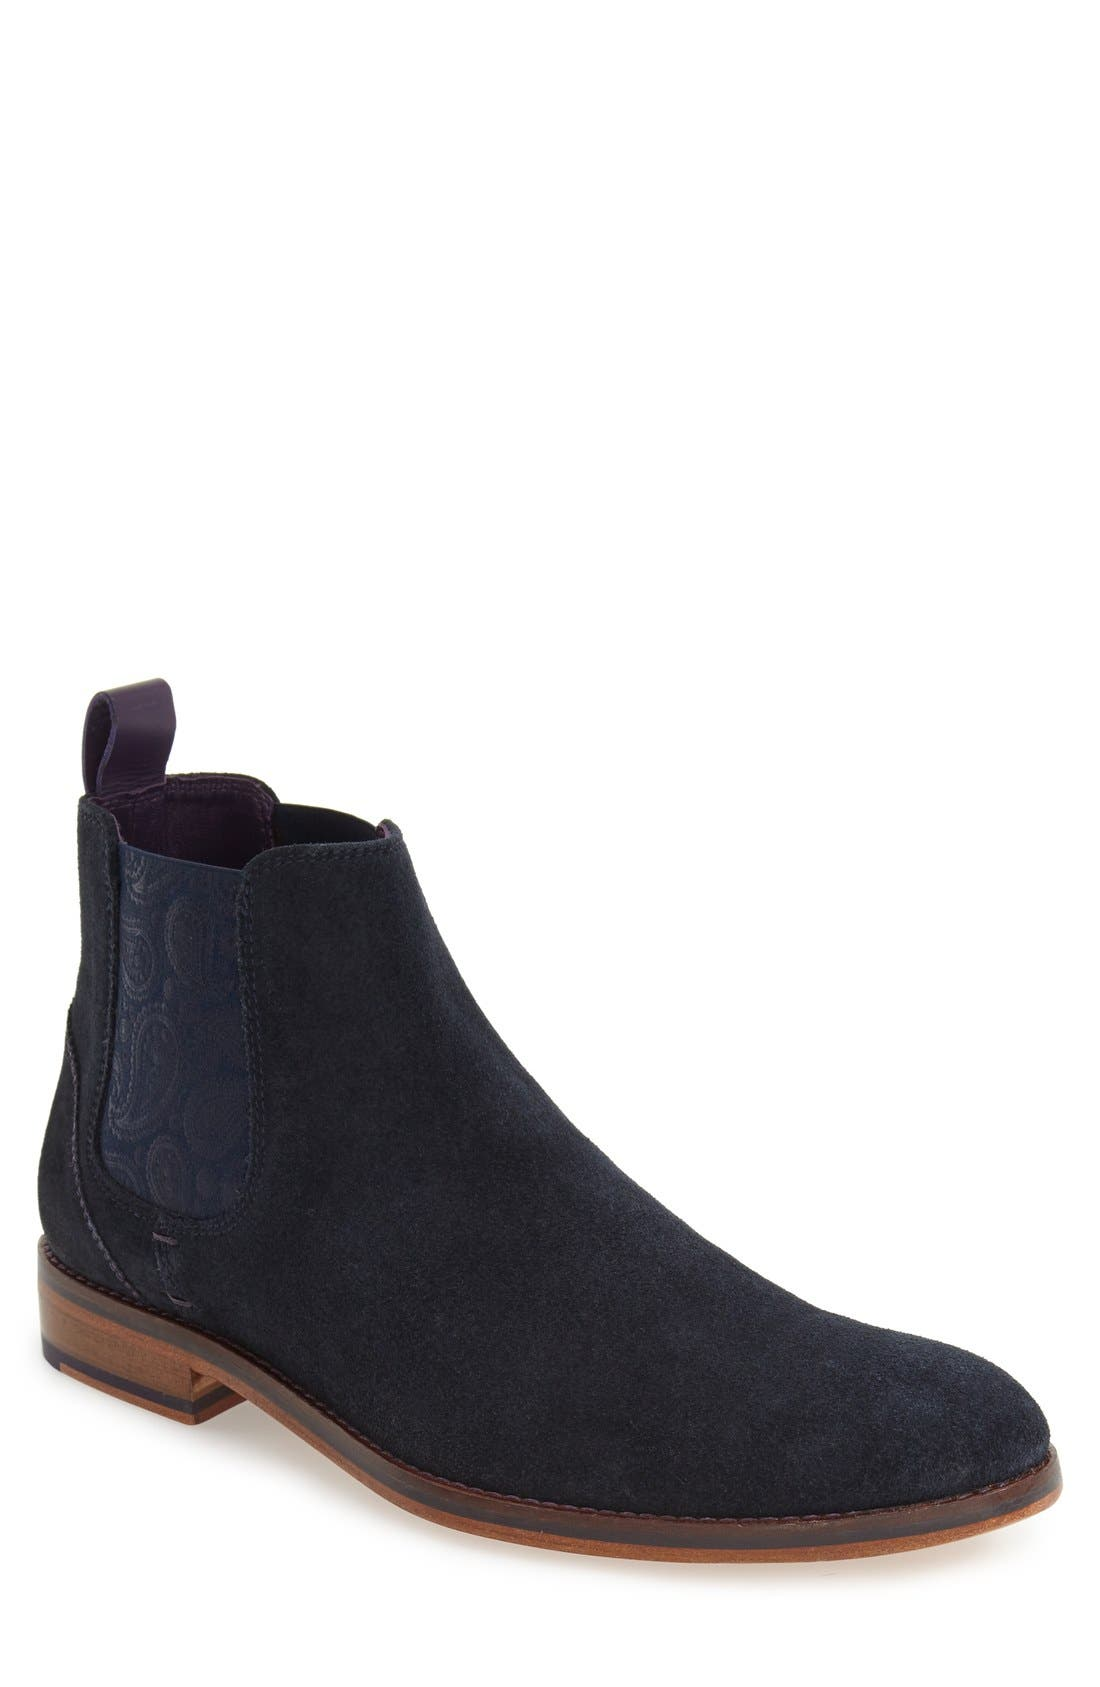 'Camroon 4' Chelsea Boot,                             Main thumbnail 6, color,